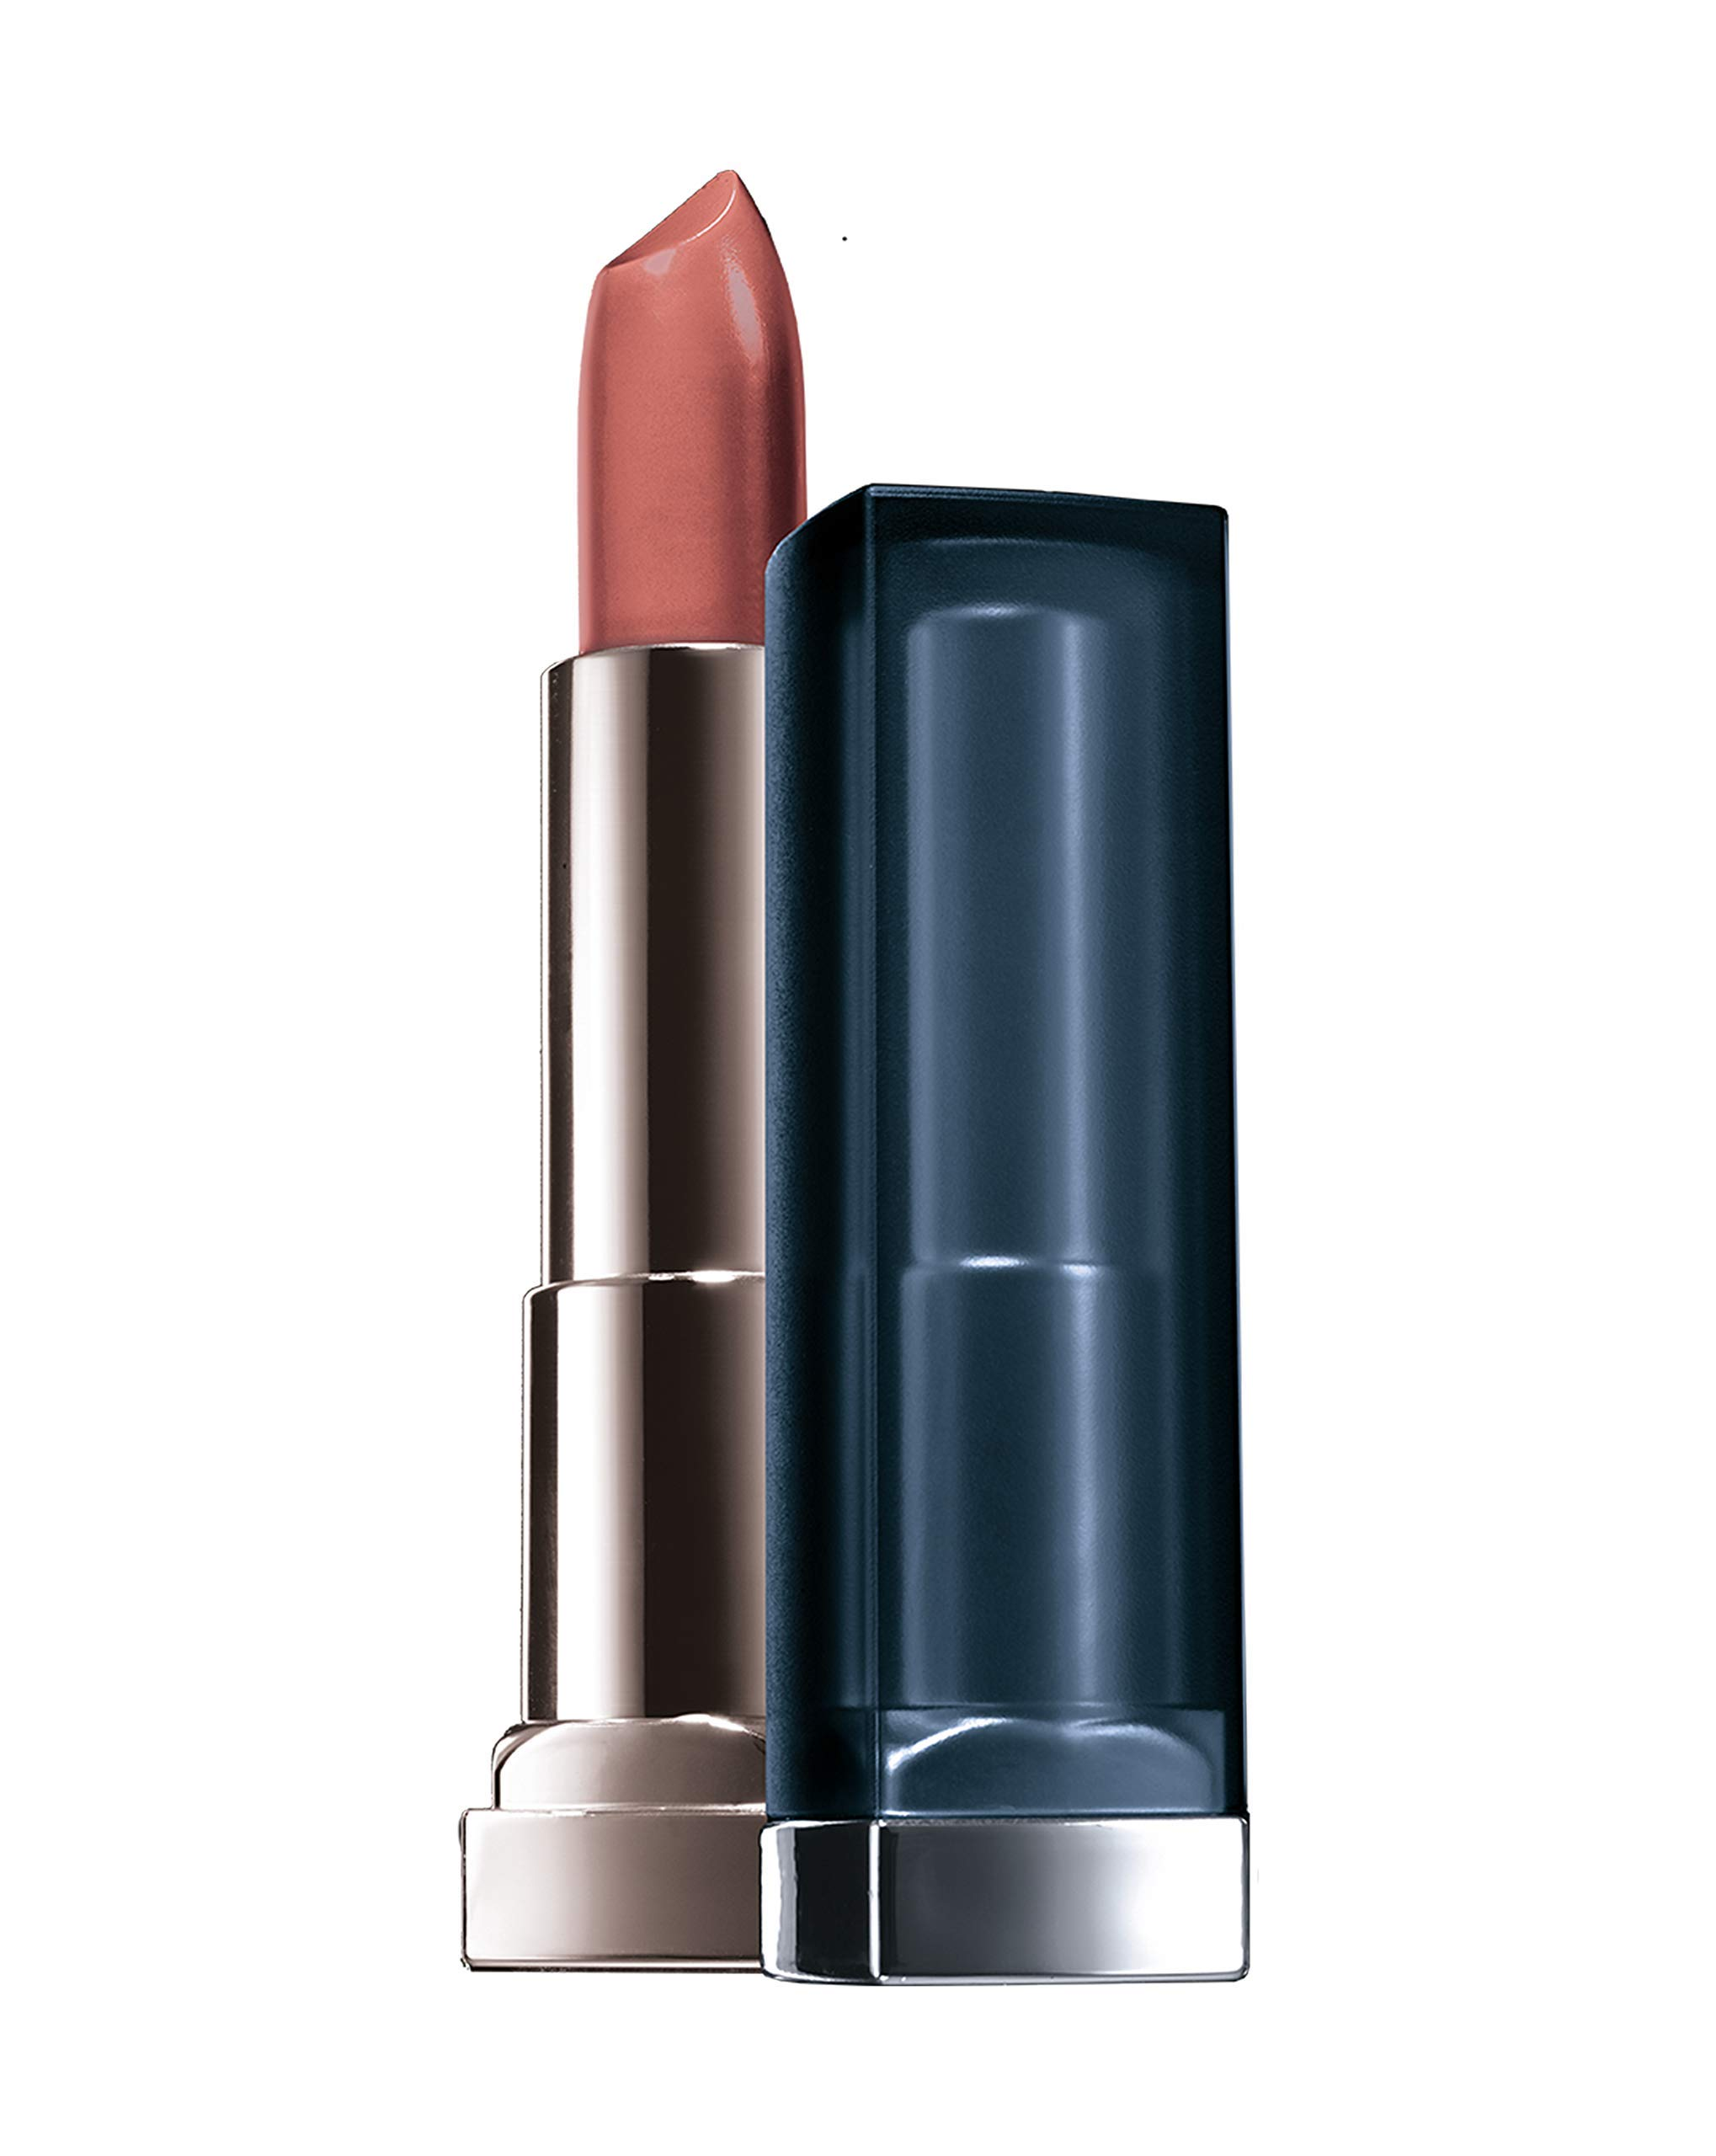 Maybelline Creamy Mattes Lipstick (Nude Embrace) Review